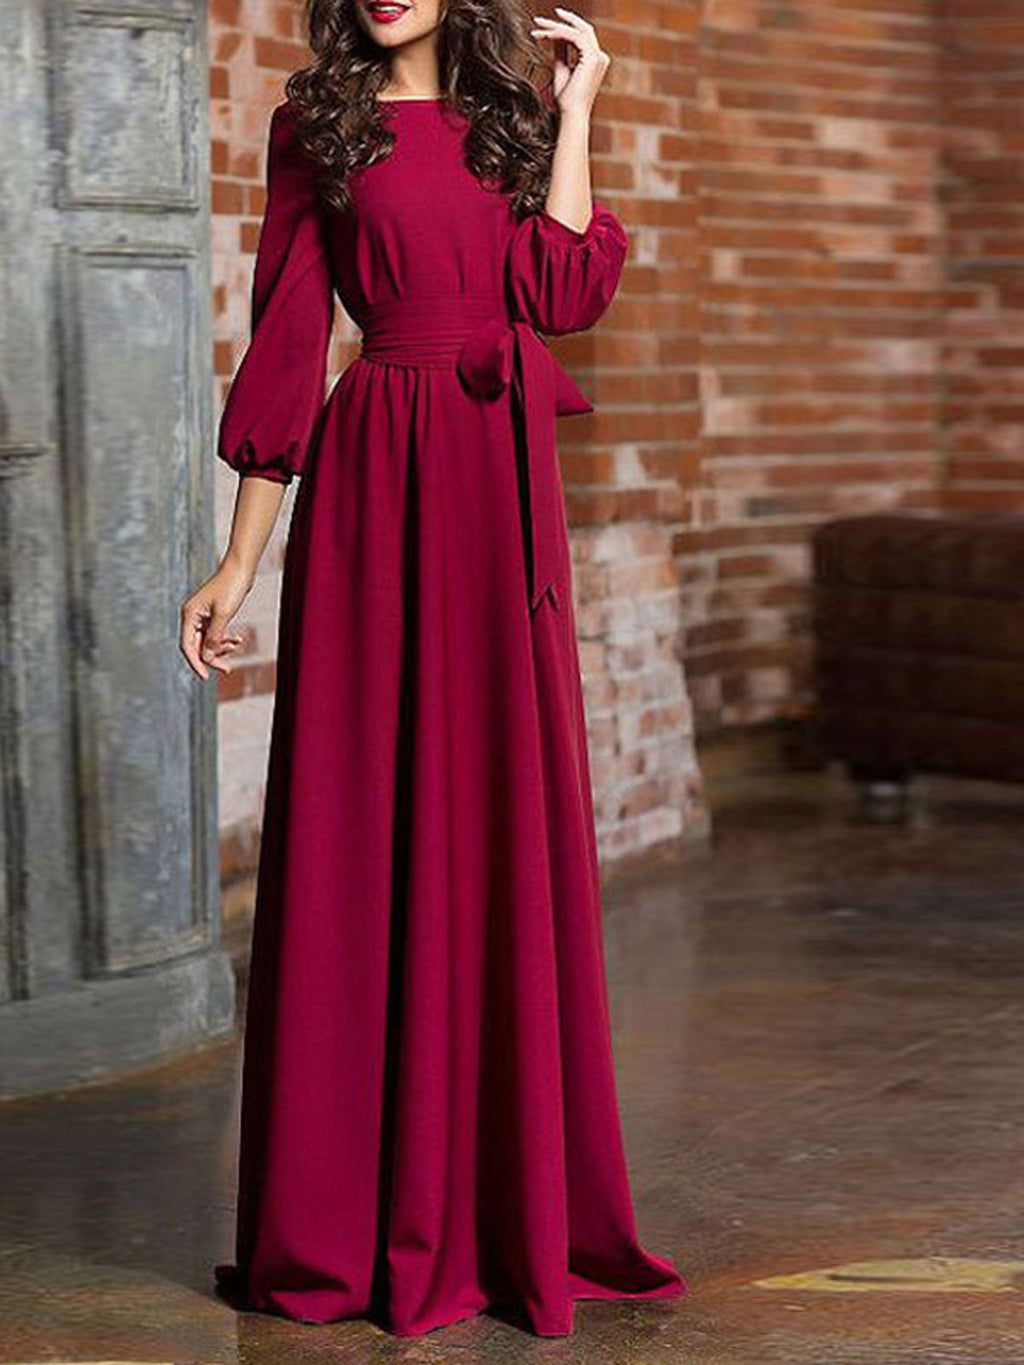 Lantern Sleeve Boat Neck Prom Elegant Evening Gowns Maxi Dress Rikkishop